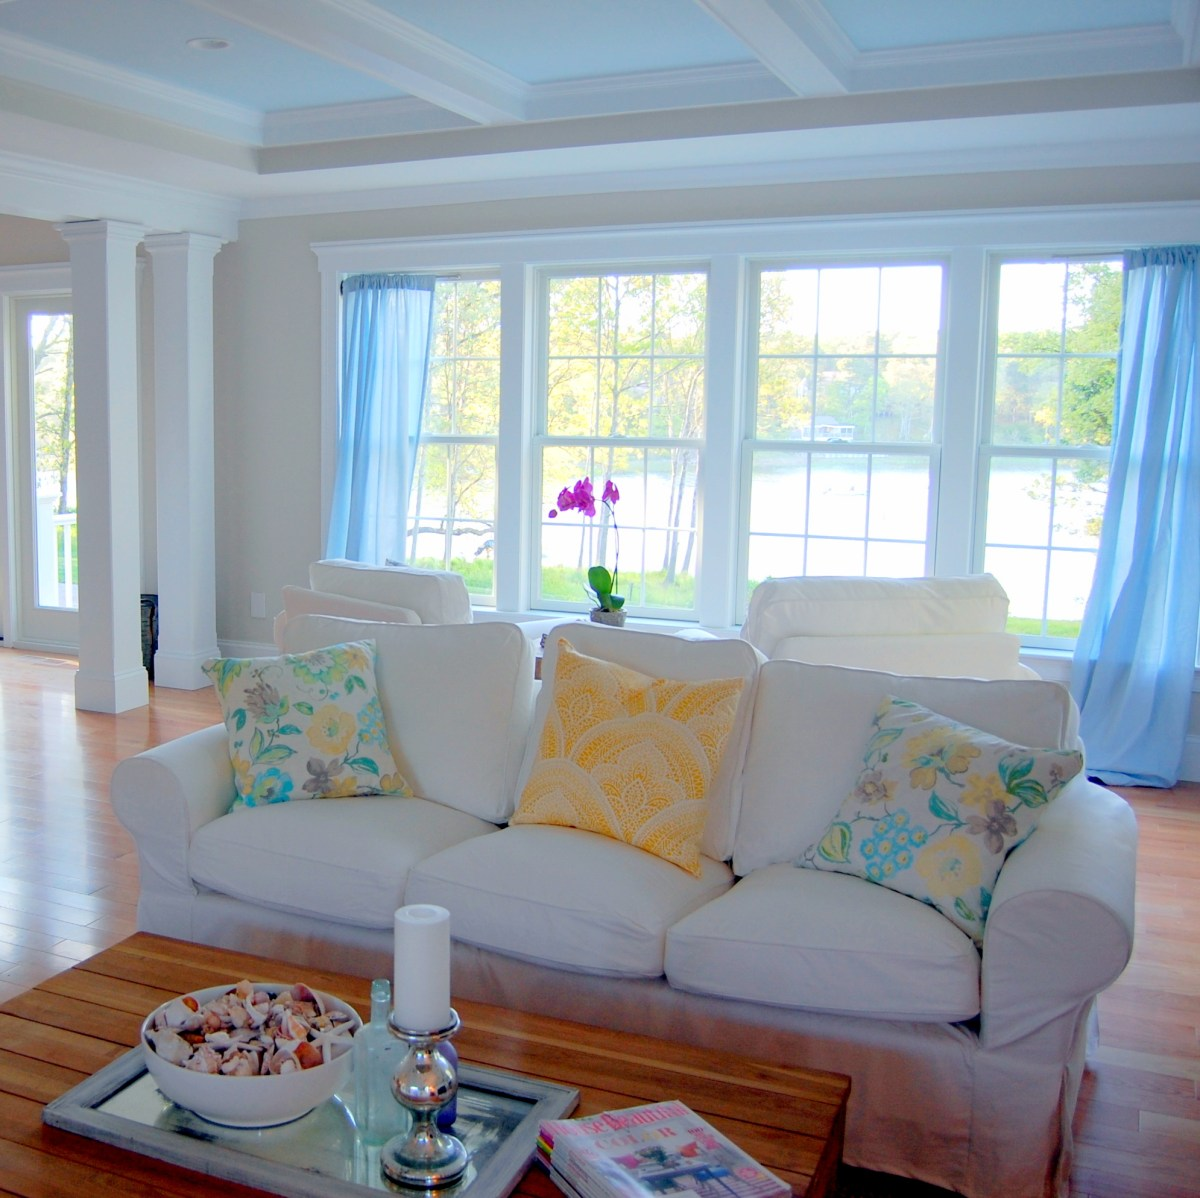 Home staging in Orleans, Upper Cape Cod